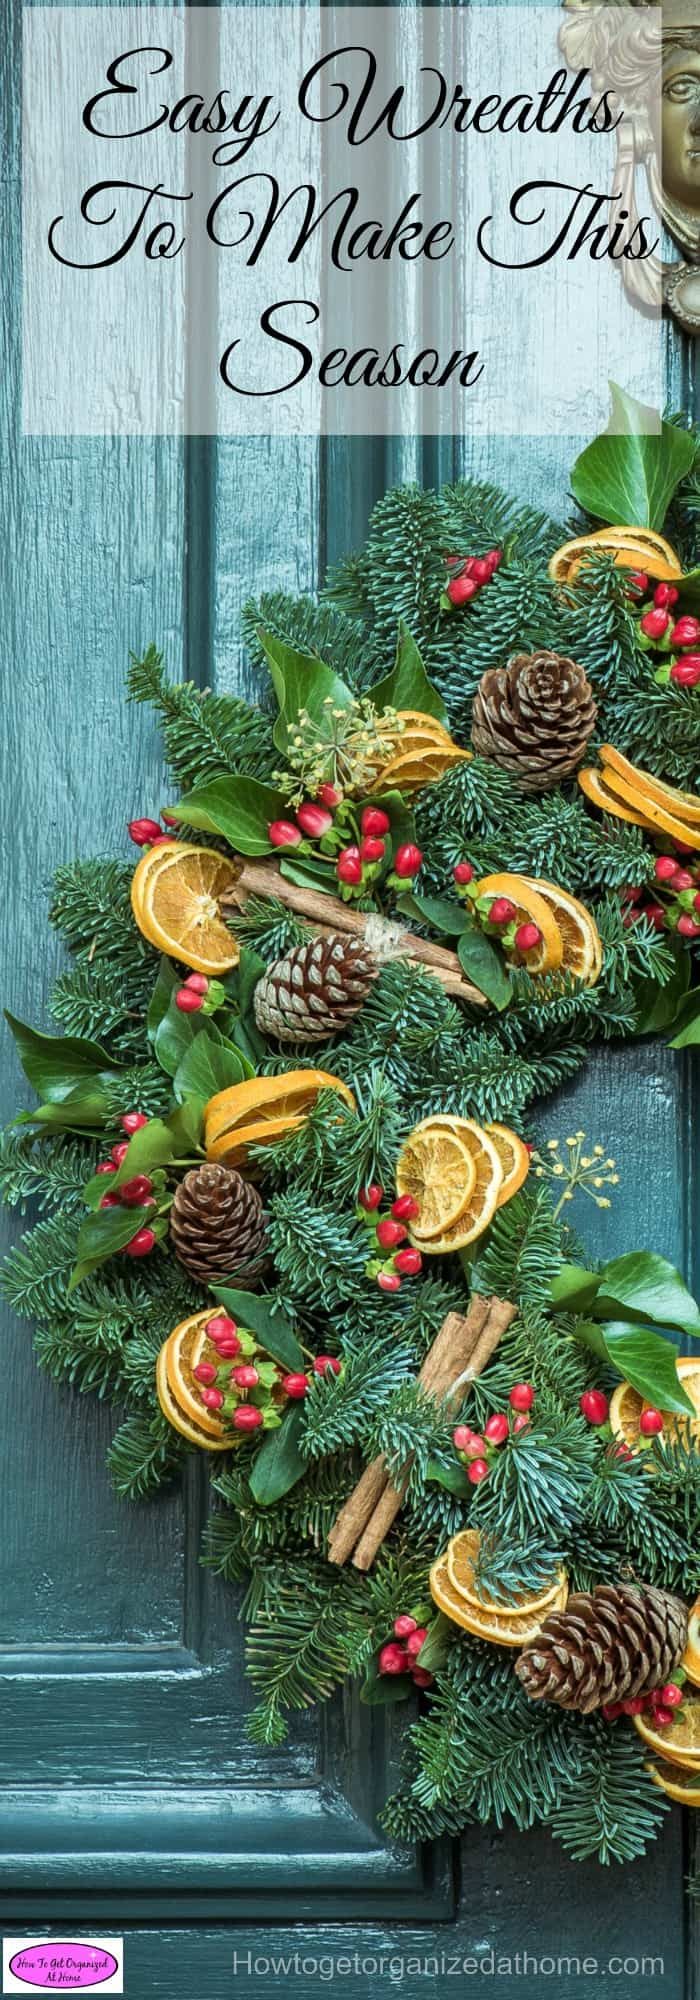 If you are looking for easy wreaths to make this season, then this article is perfect. It is filled with a selection of different wreaths for you to make!